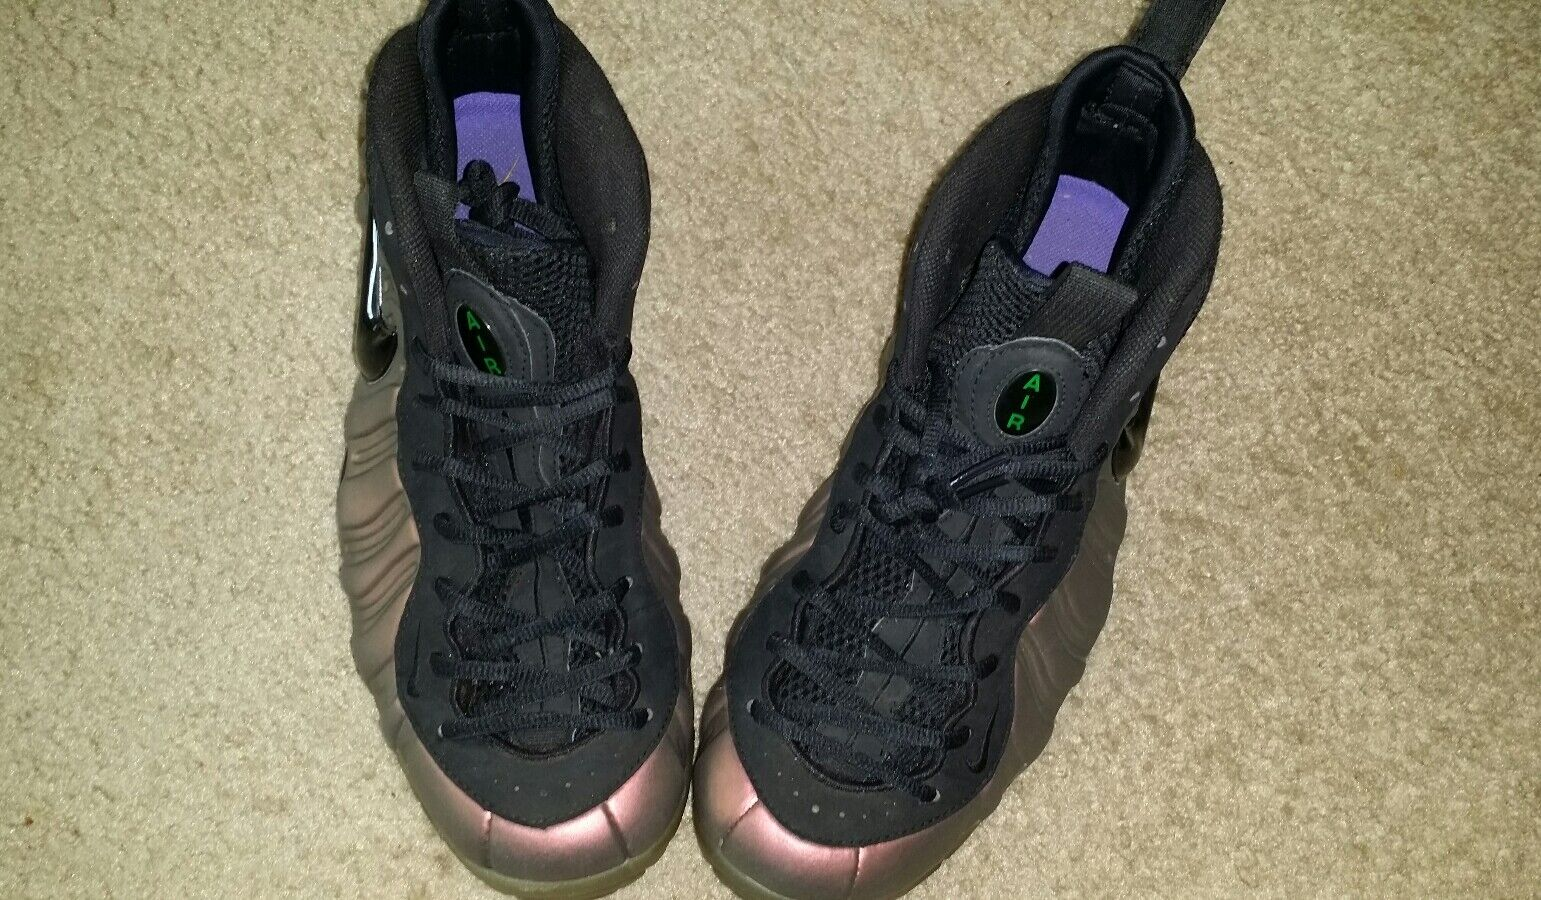 Nike Foamposite Pro Size 10 Black Gym Green 624041 302 Great Condition